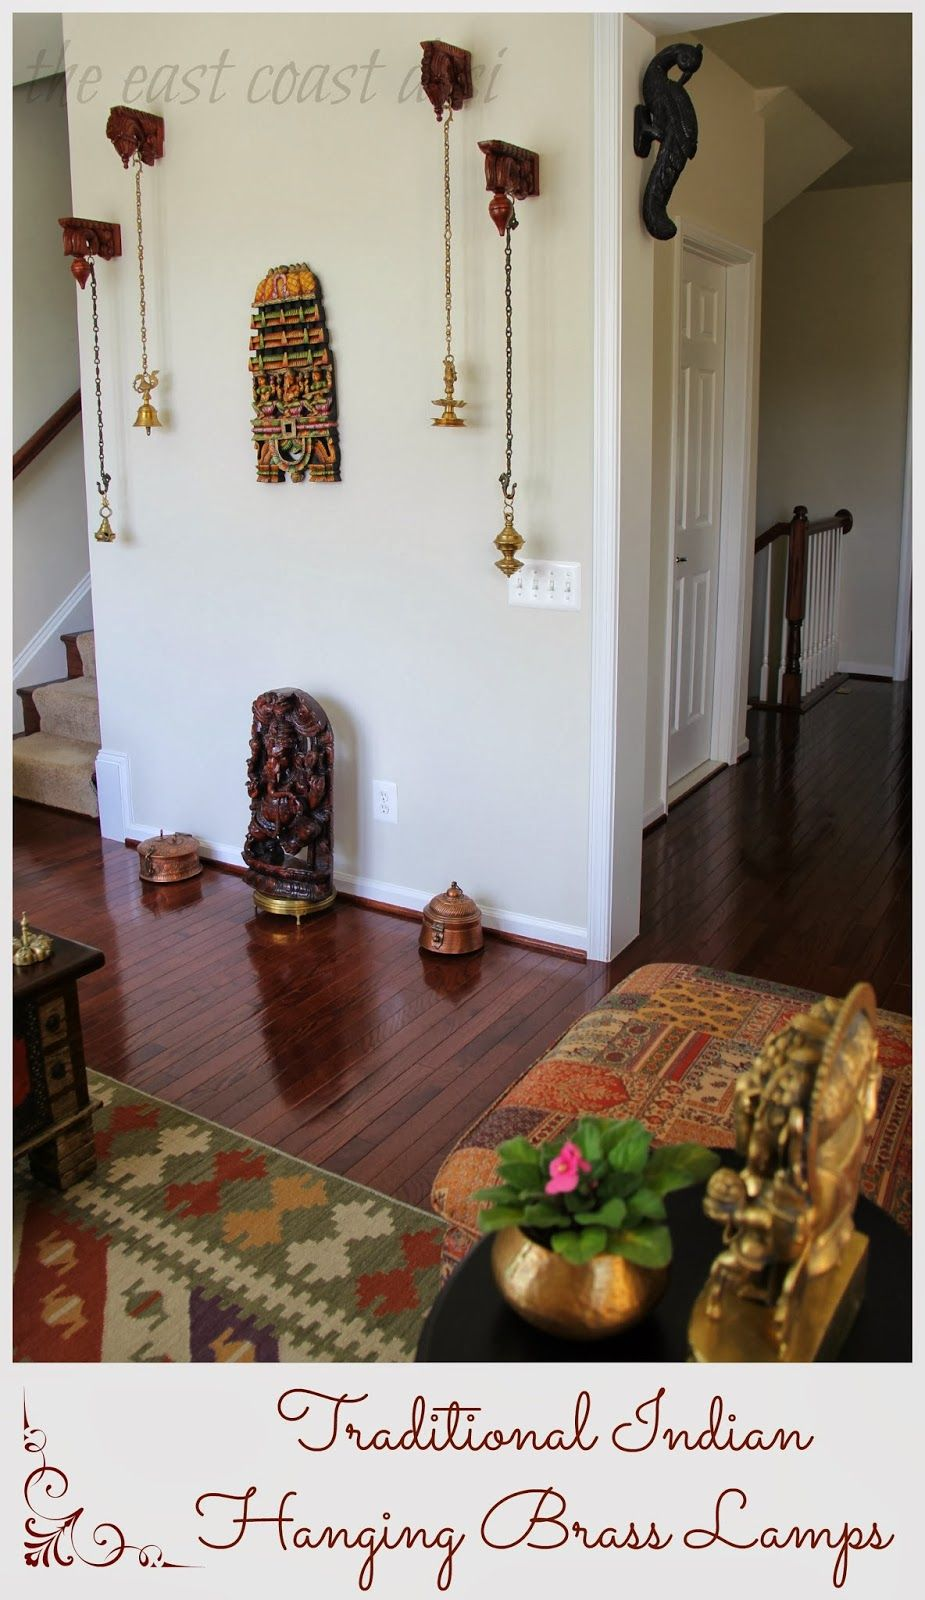 the east coast desi: My Living Room a reflection of INDIA - Diwali ...